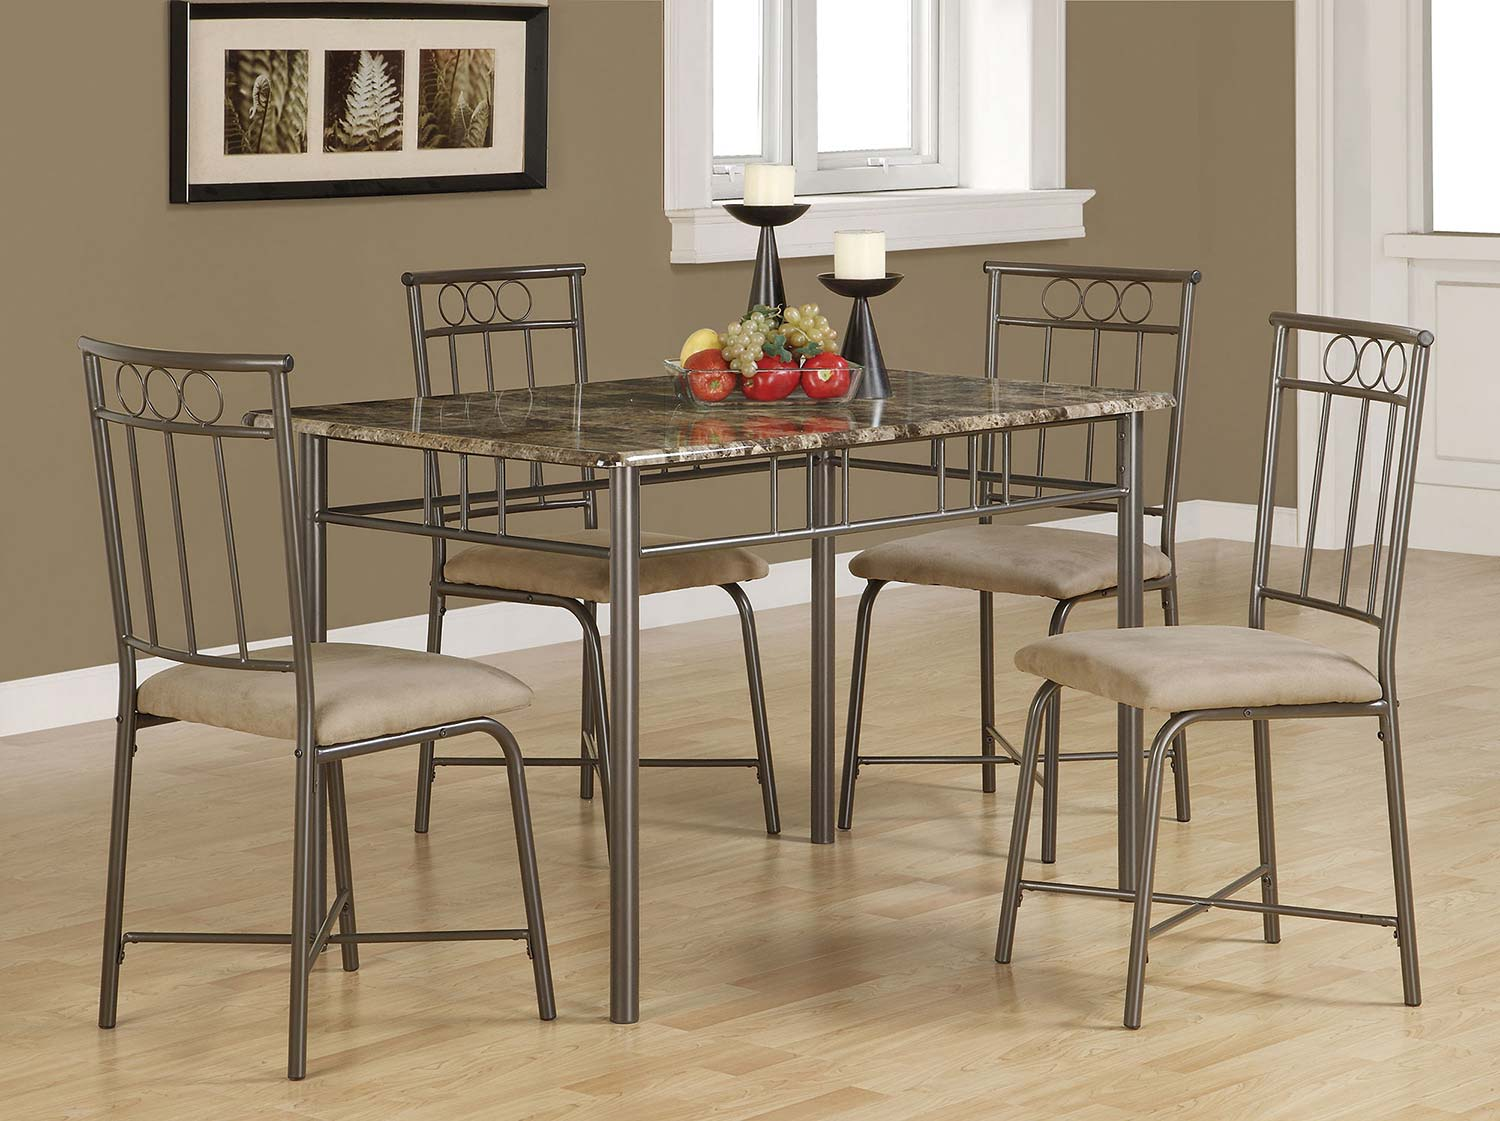 Coaster 150114 5 PC Dining Set - Brown Metal